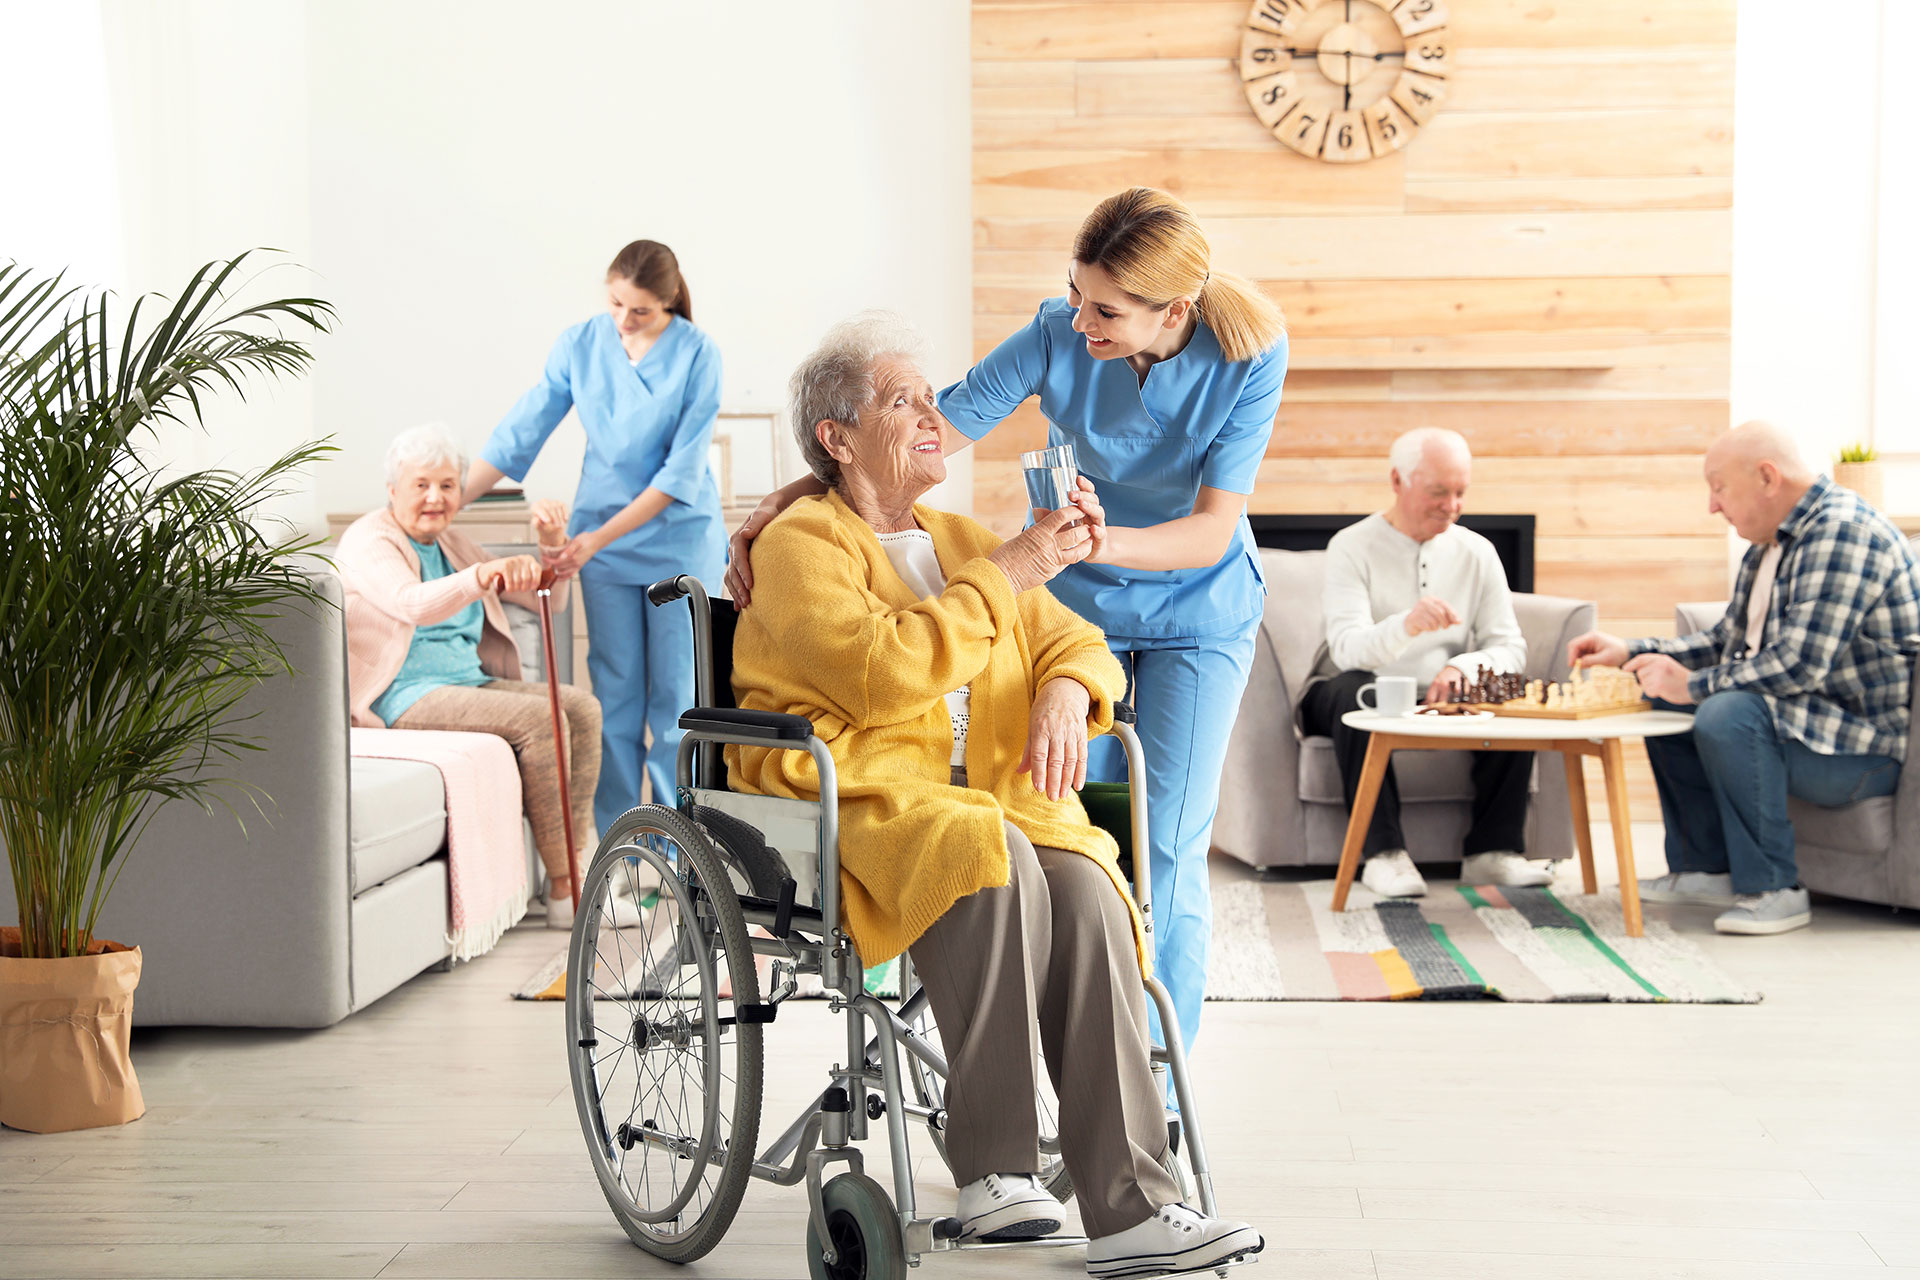 About Belmont Lodge - Healthcare Center